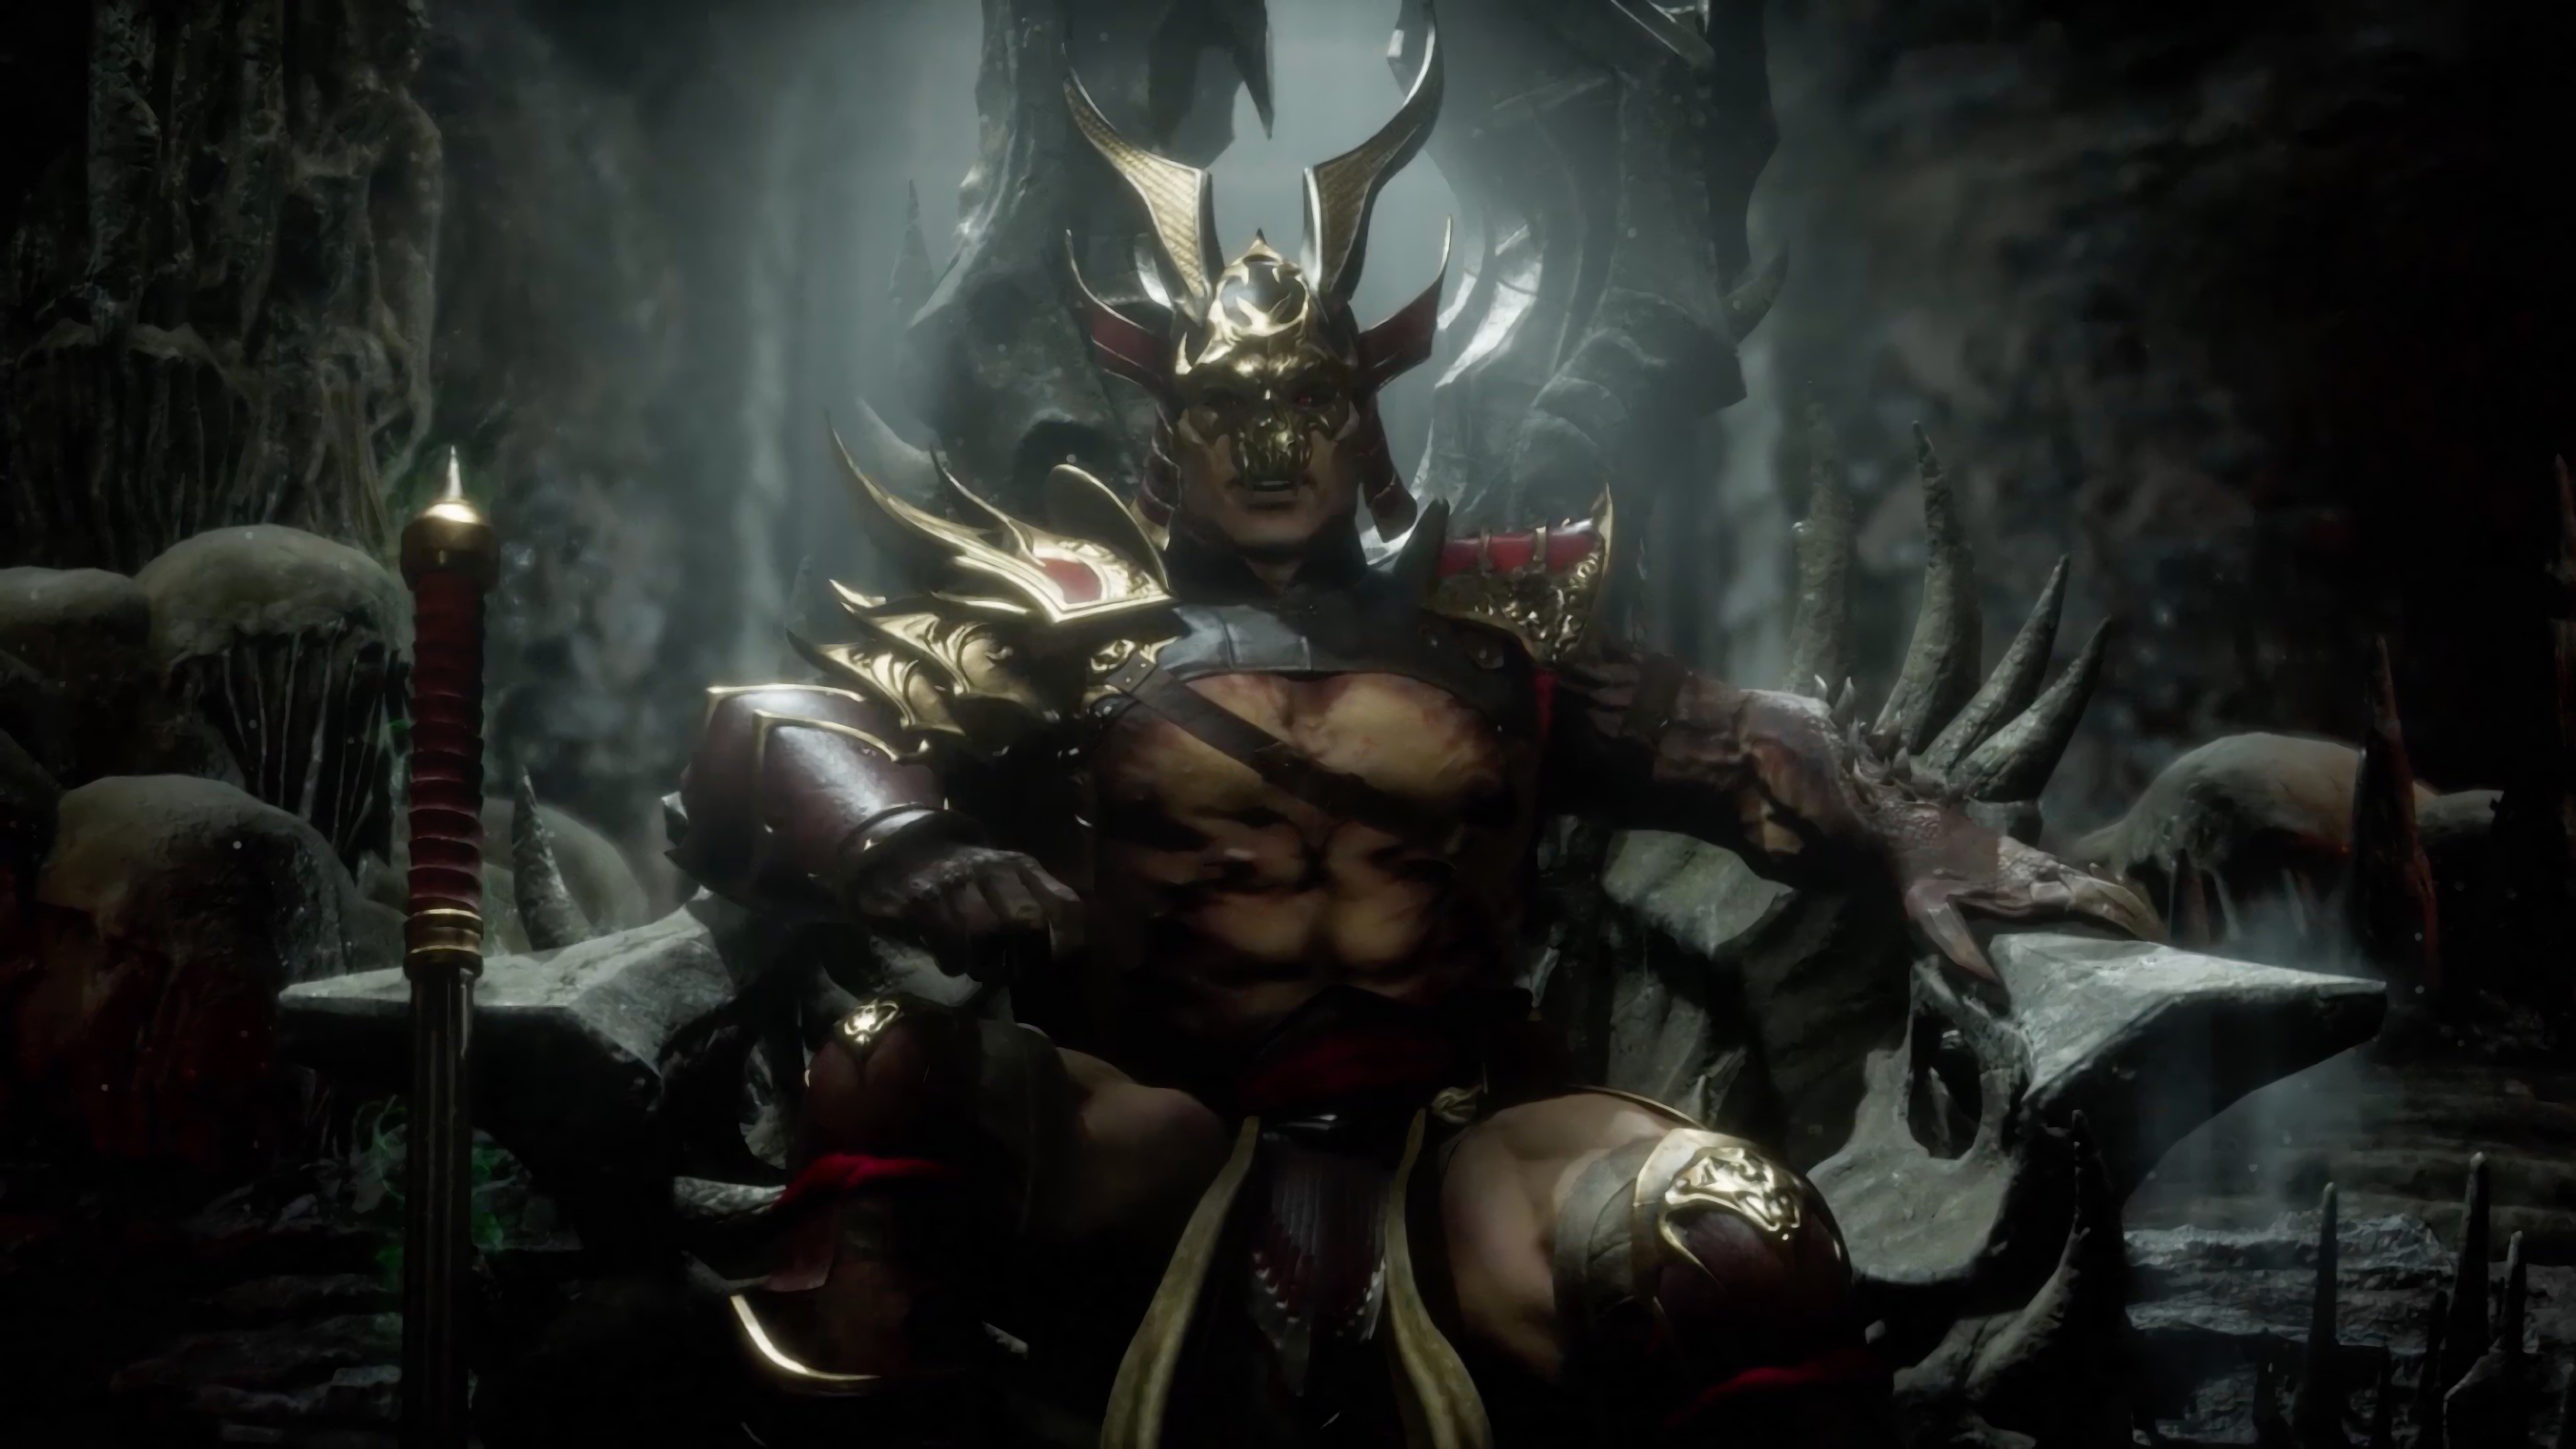 Mortal Kombat 11 Shao Kahn Digital Code Xbox One 5 For Sale